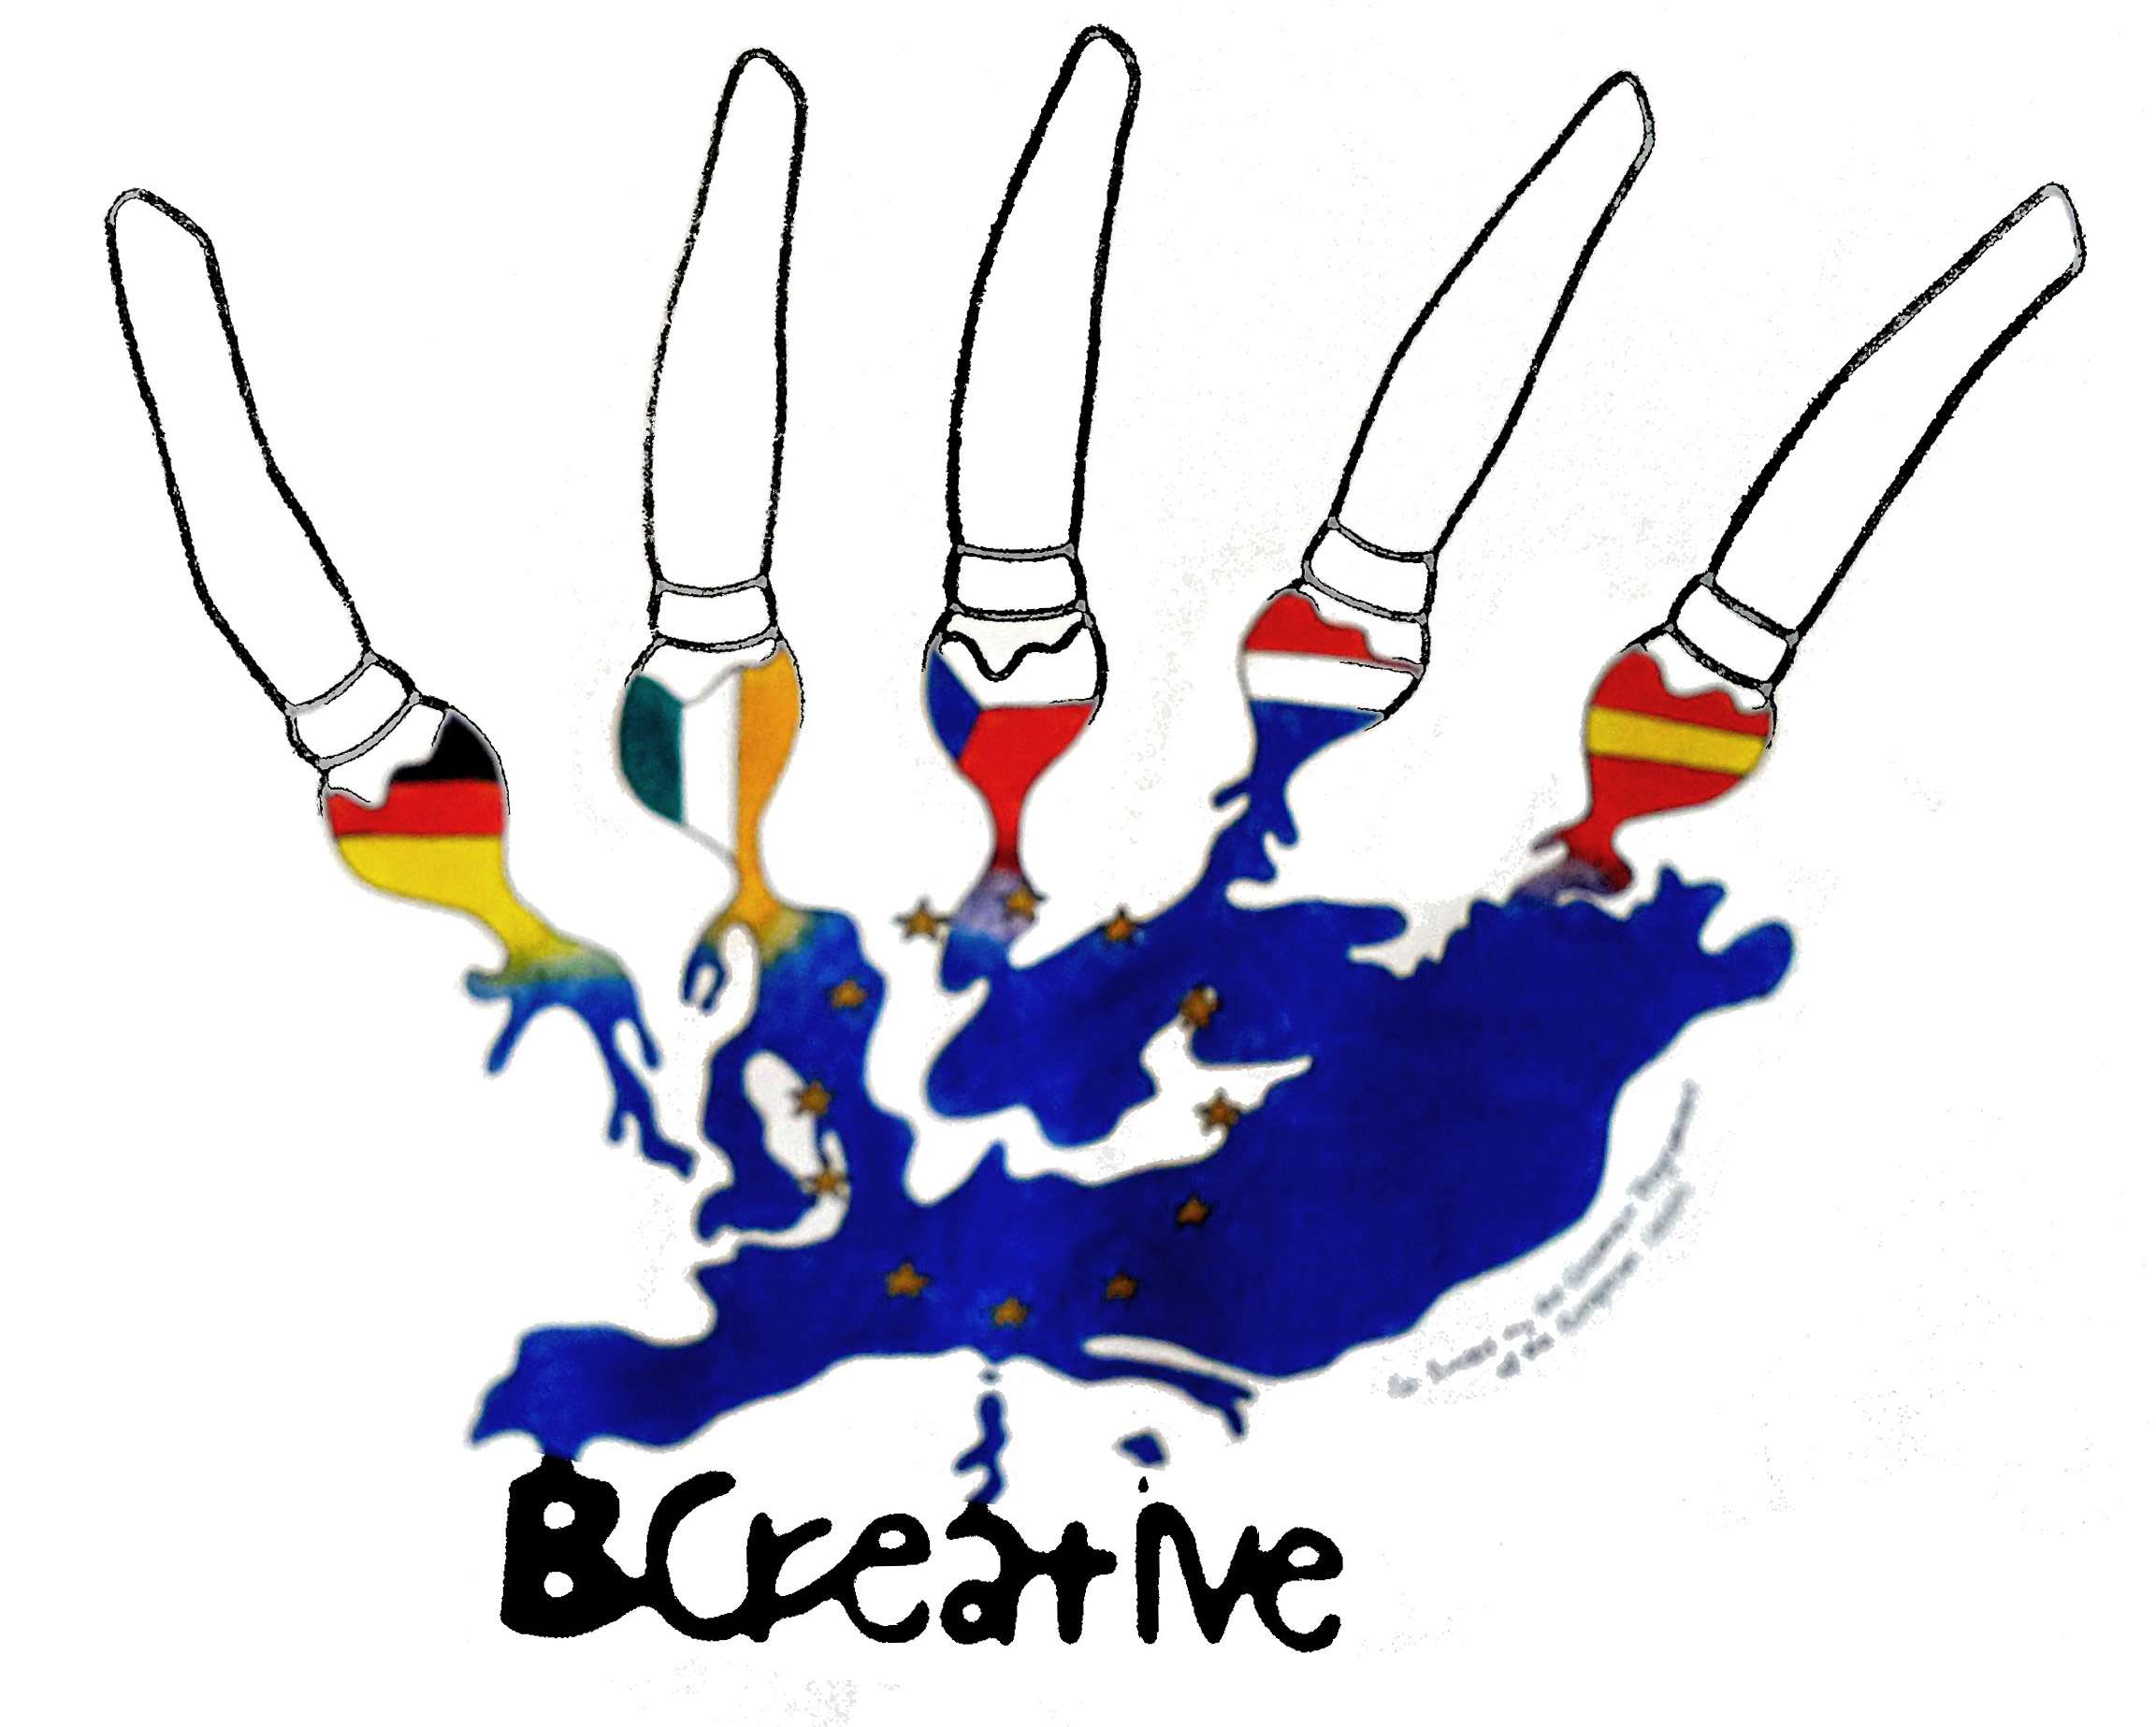 Erasmus+ B CreAtive - B CreAtive brings together, in a spirit of cooperation through creativity,students and staff from Erasmus+ project schools across five nations - Czech Republic, Germany, Ireland, Netherlands and Spain.